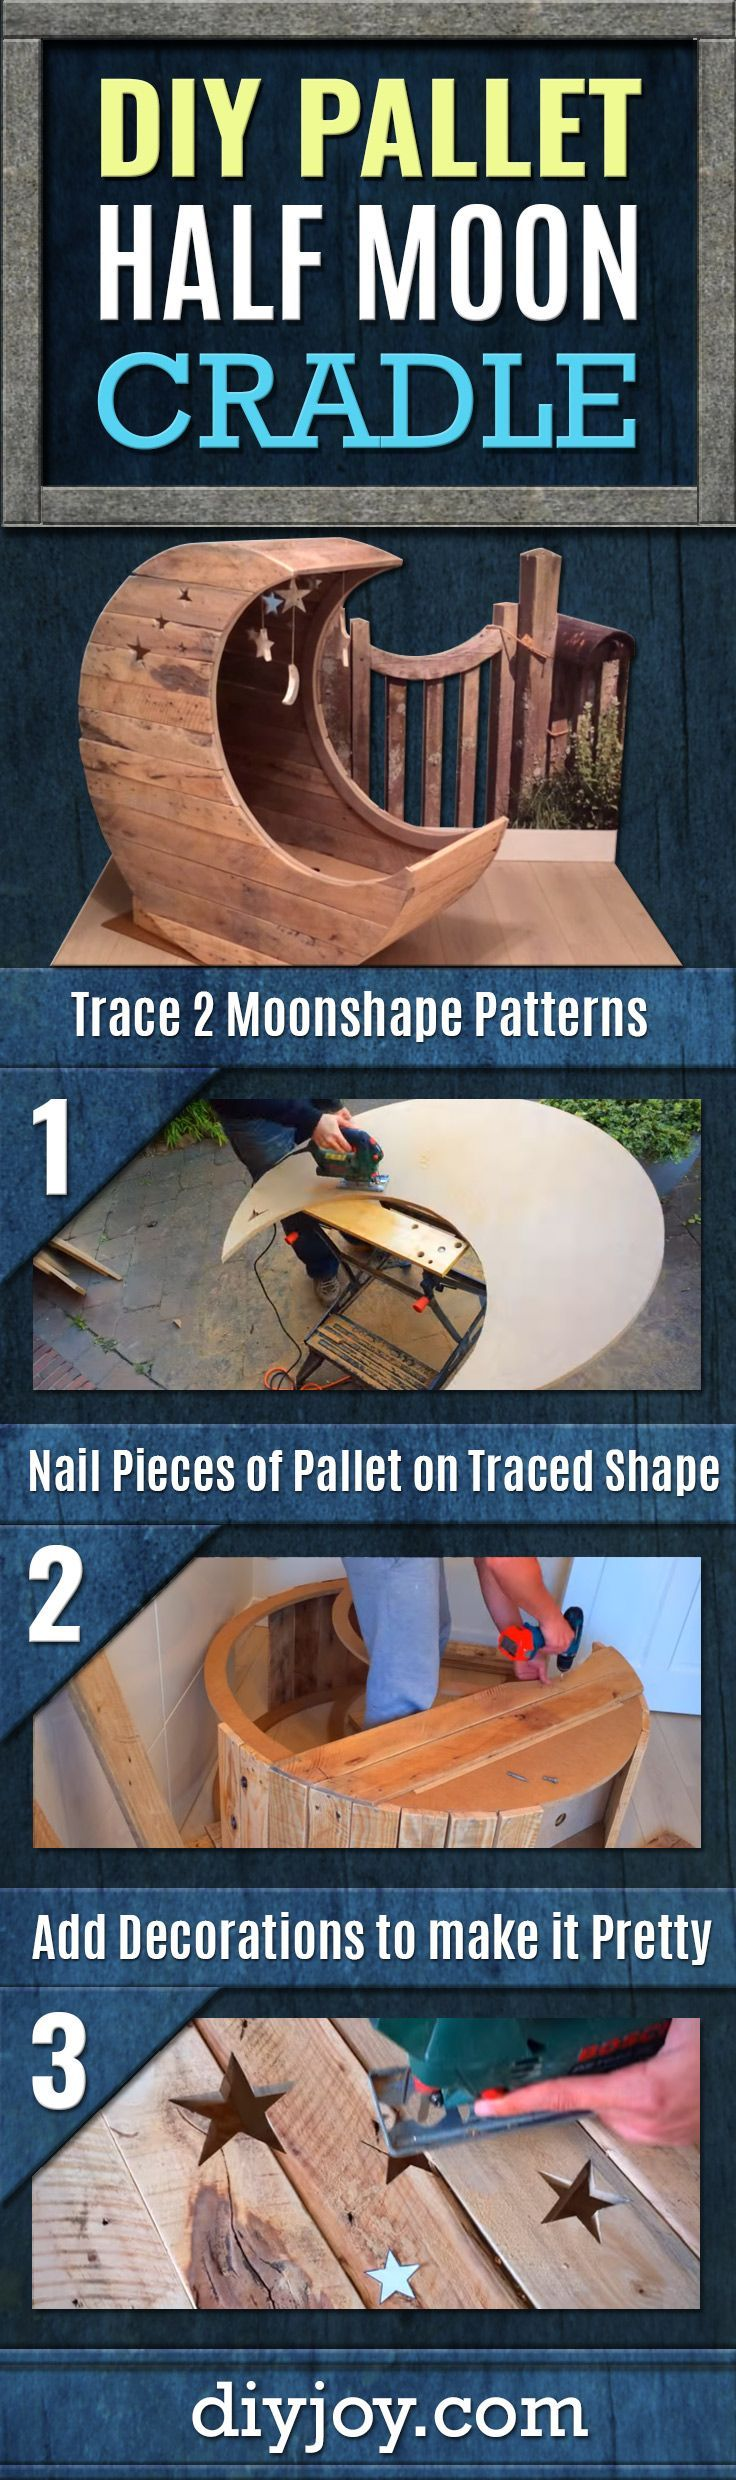 DIY Pallet Cradle - Half Moon Cradle Tutorial For Baby Room Decor - Creative and Cool Crafts and Home Decor Projects for Babies - Step by Step DIY Projects